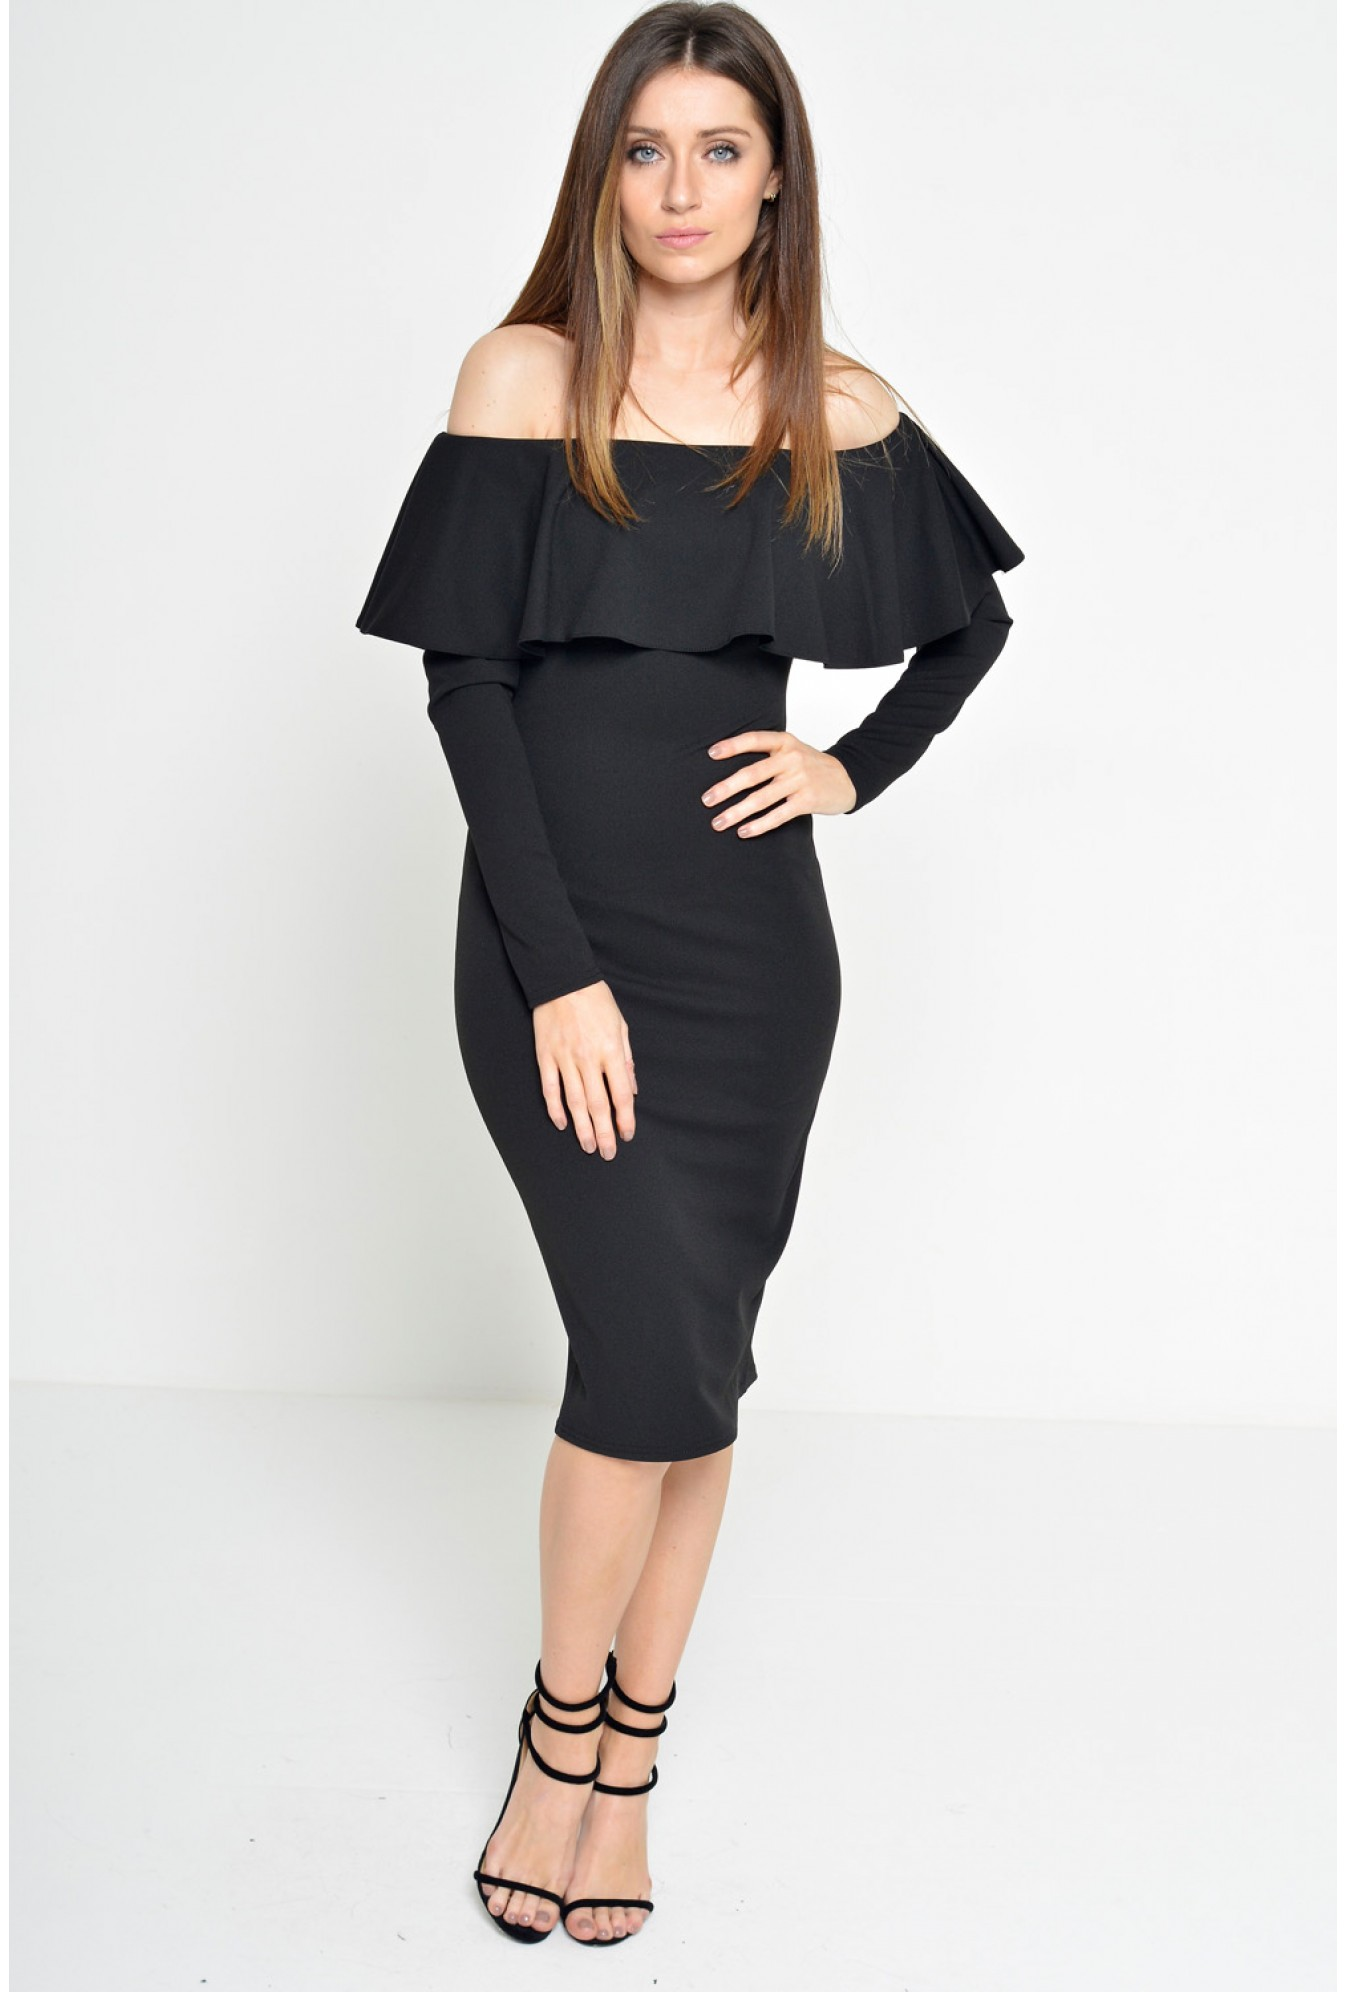 62f7588fed2 More Views. Luella Off Shoulder Long Sleeve Dress in Black. Ad Lib